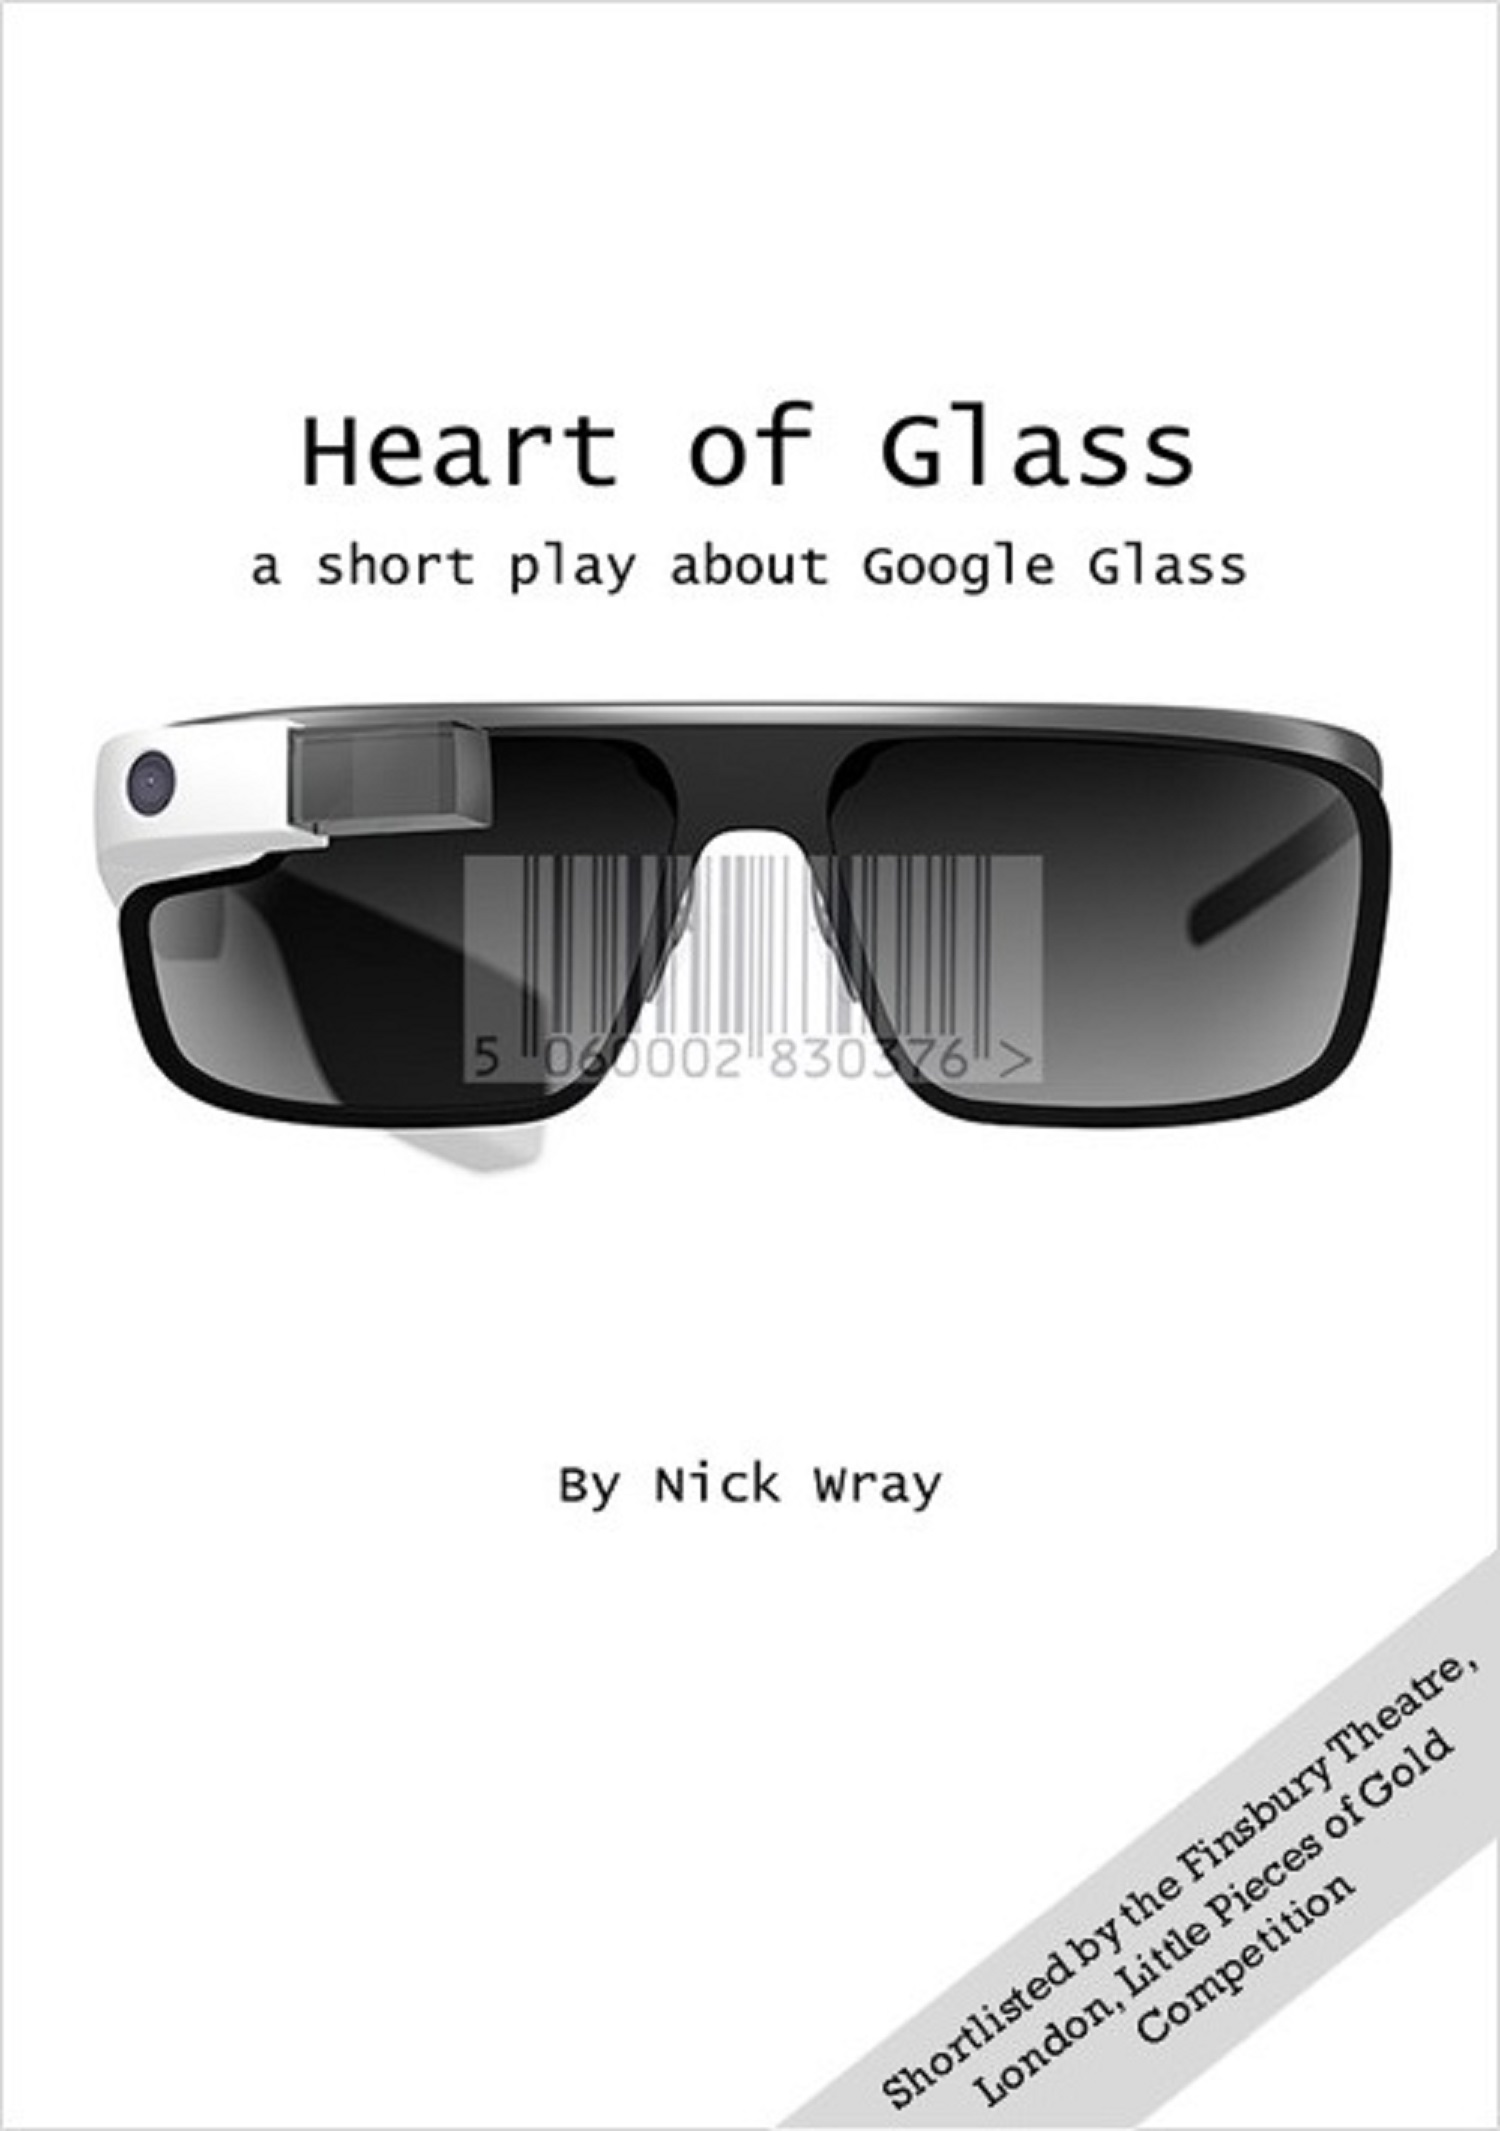 Heart of Glass - a short play about Google Glass by Nick Wray